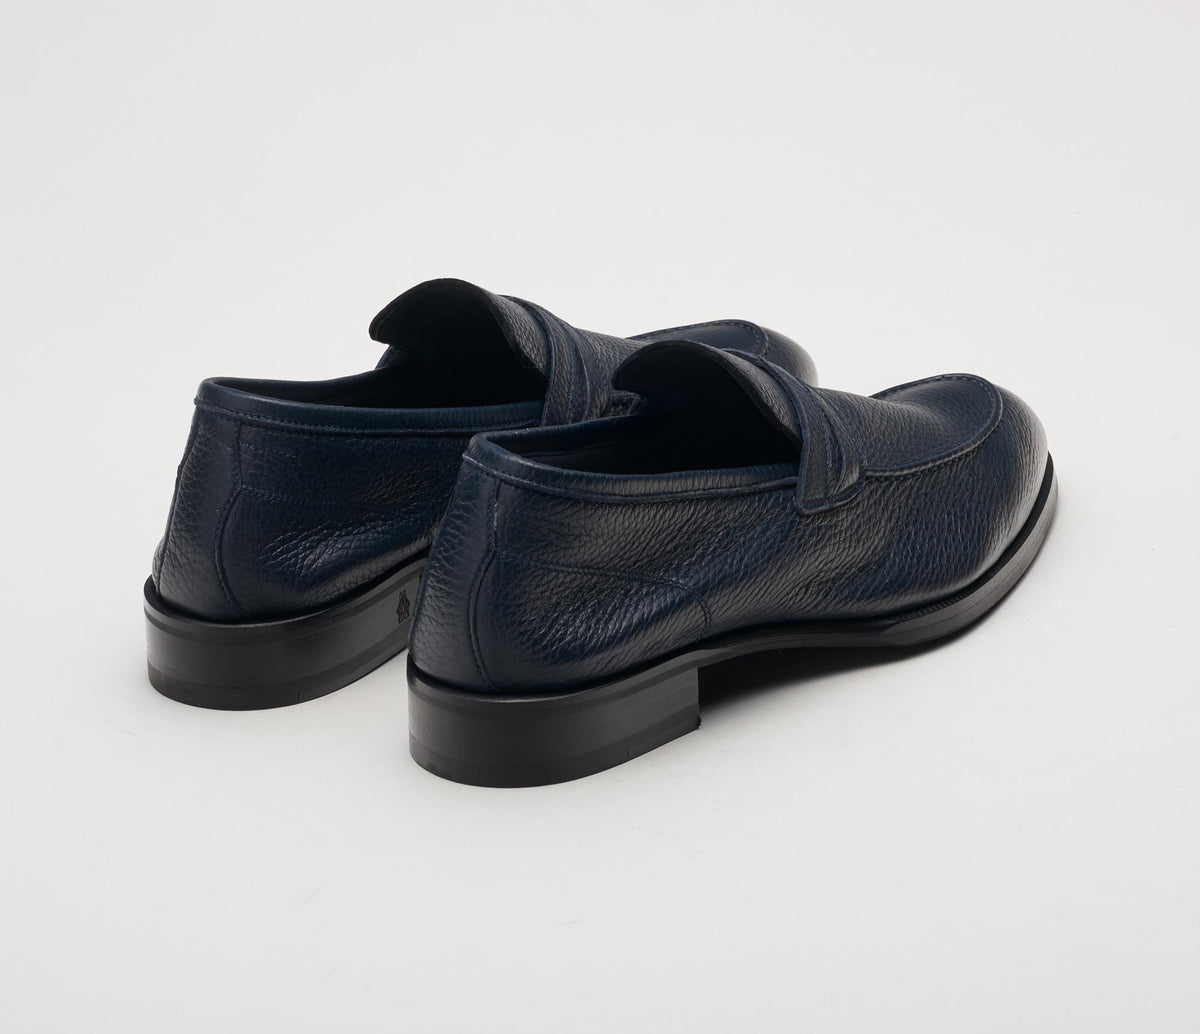 Firenze Cervo Loafer in Navy